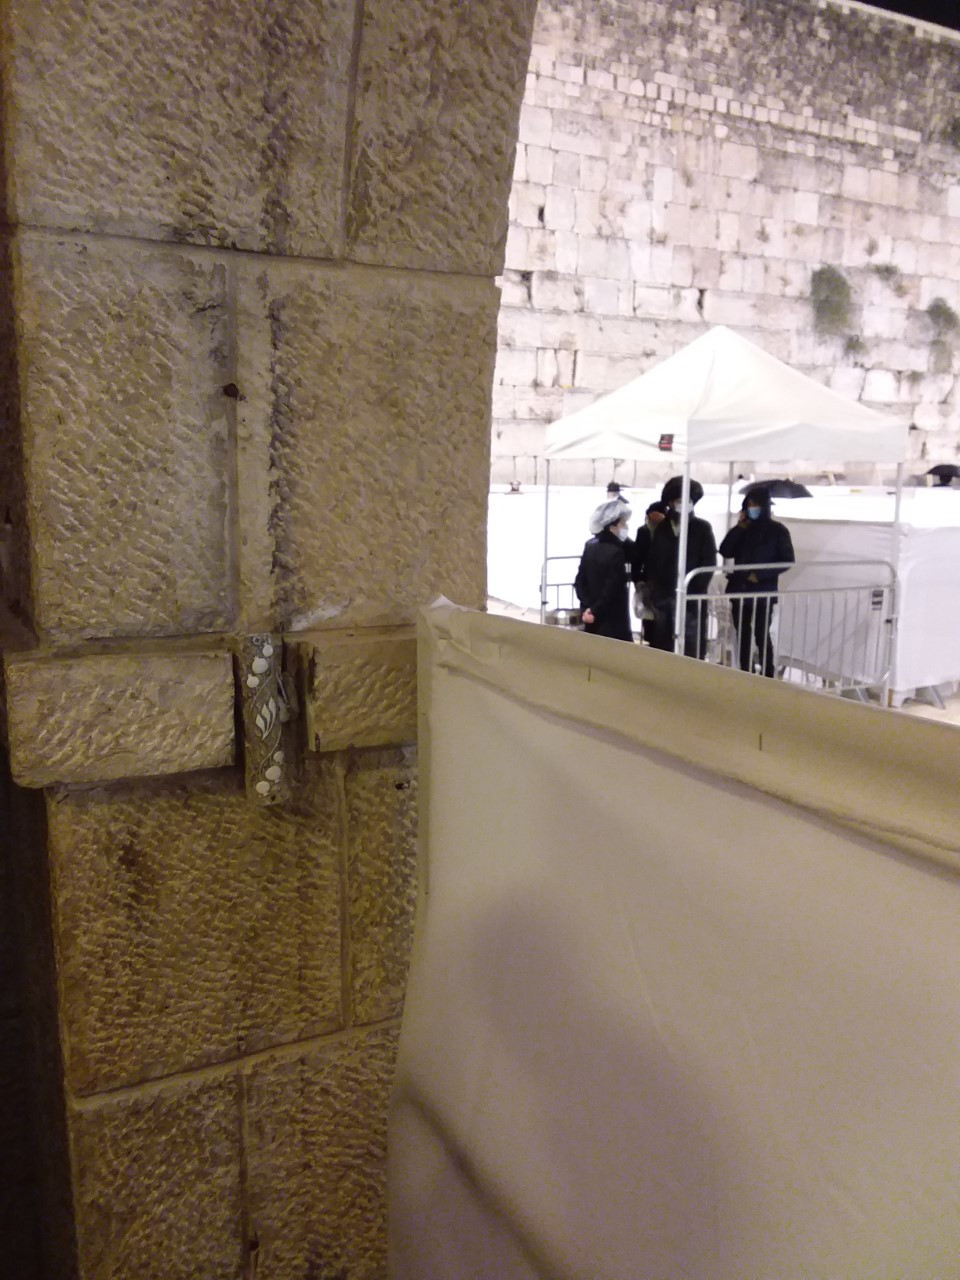 Photo taken from the low archways to the left of the entry to the Western Wall.